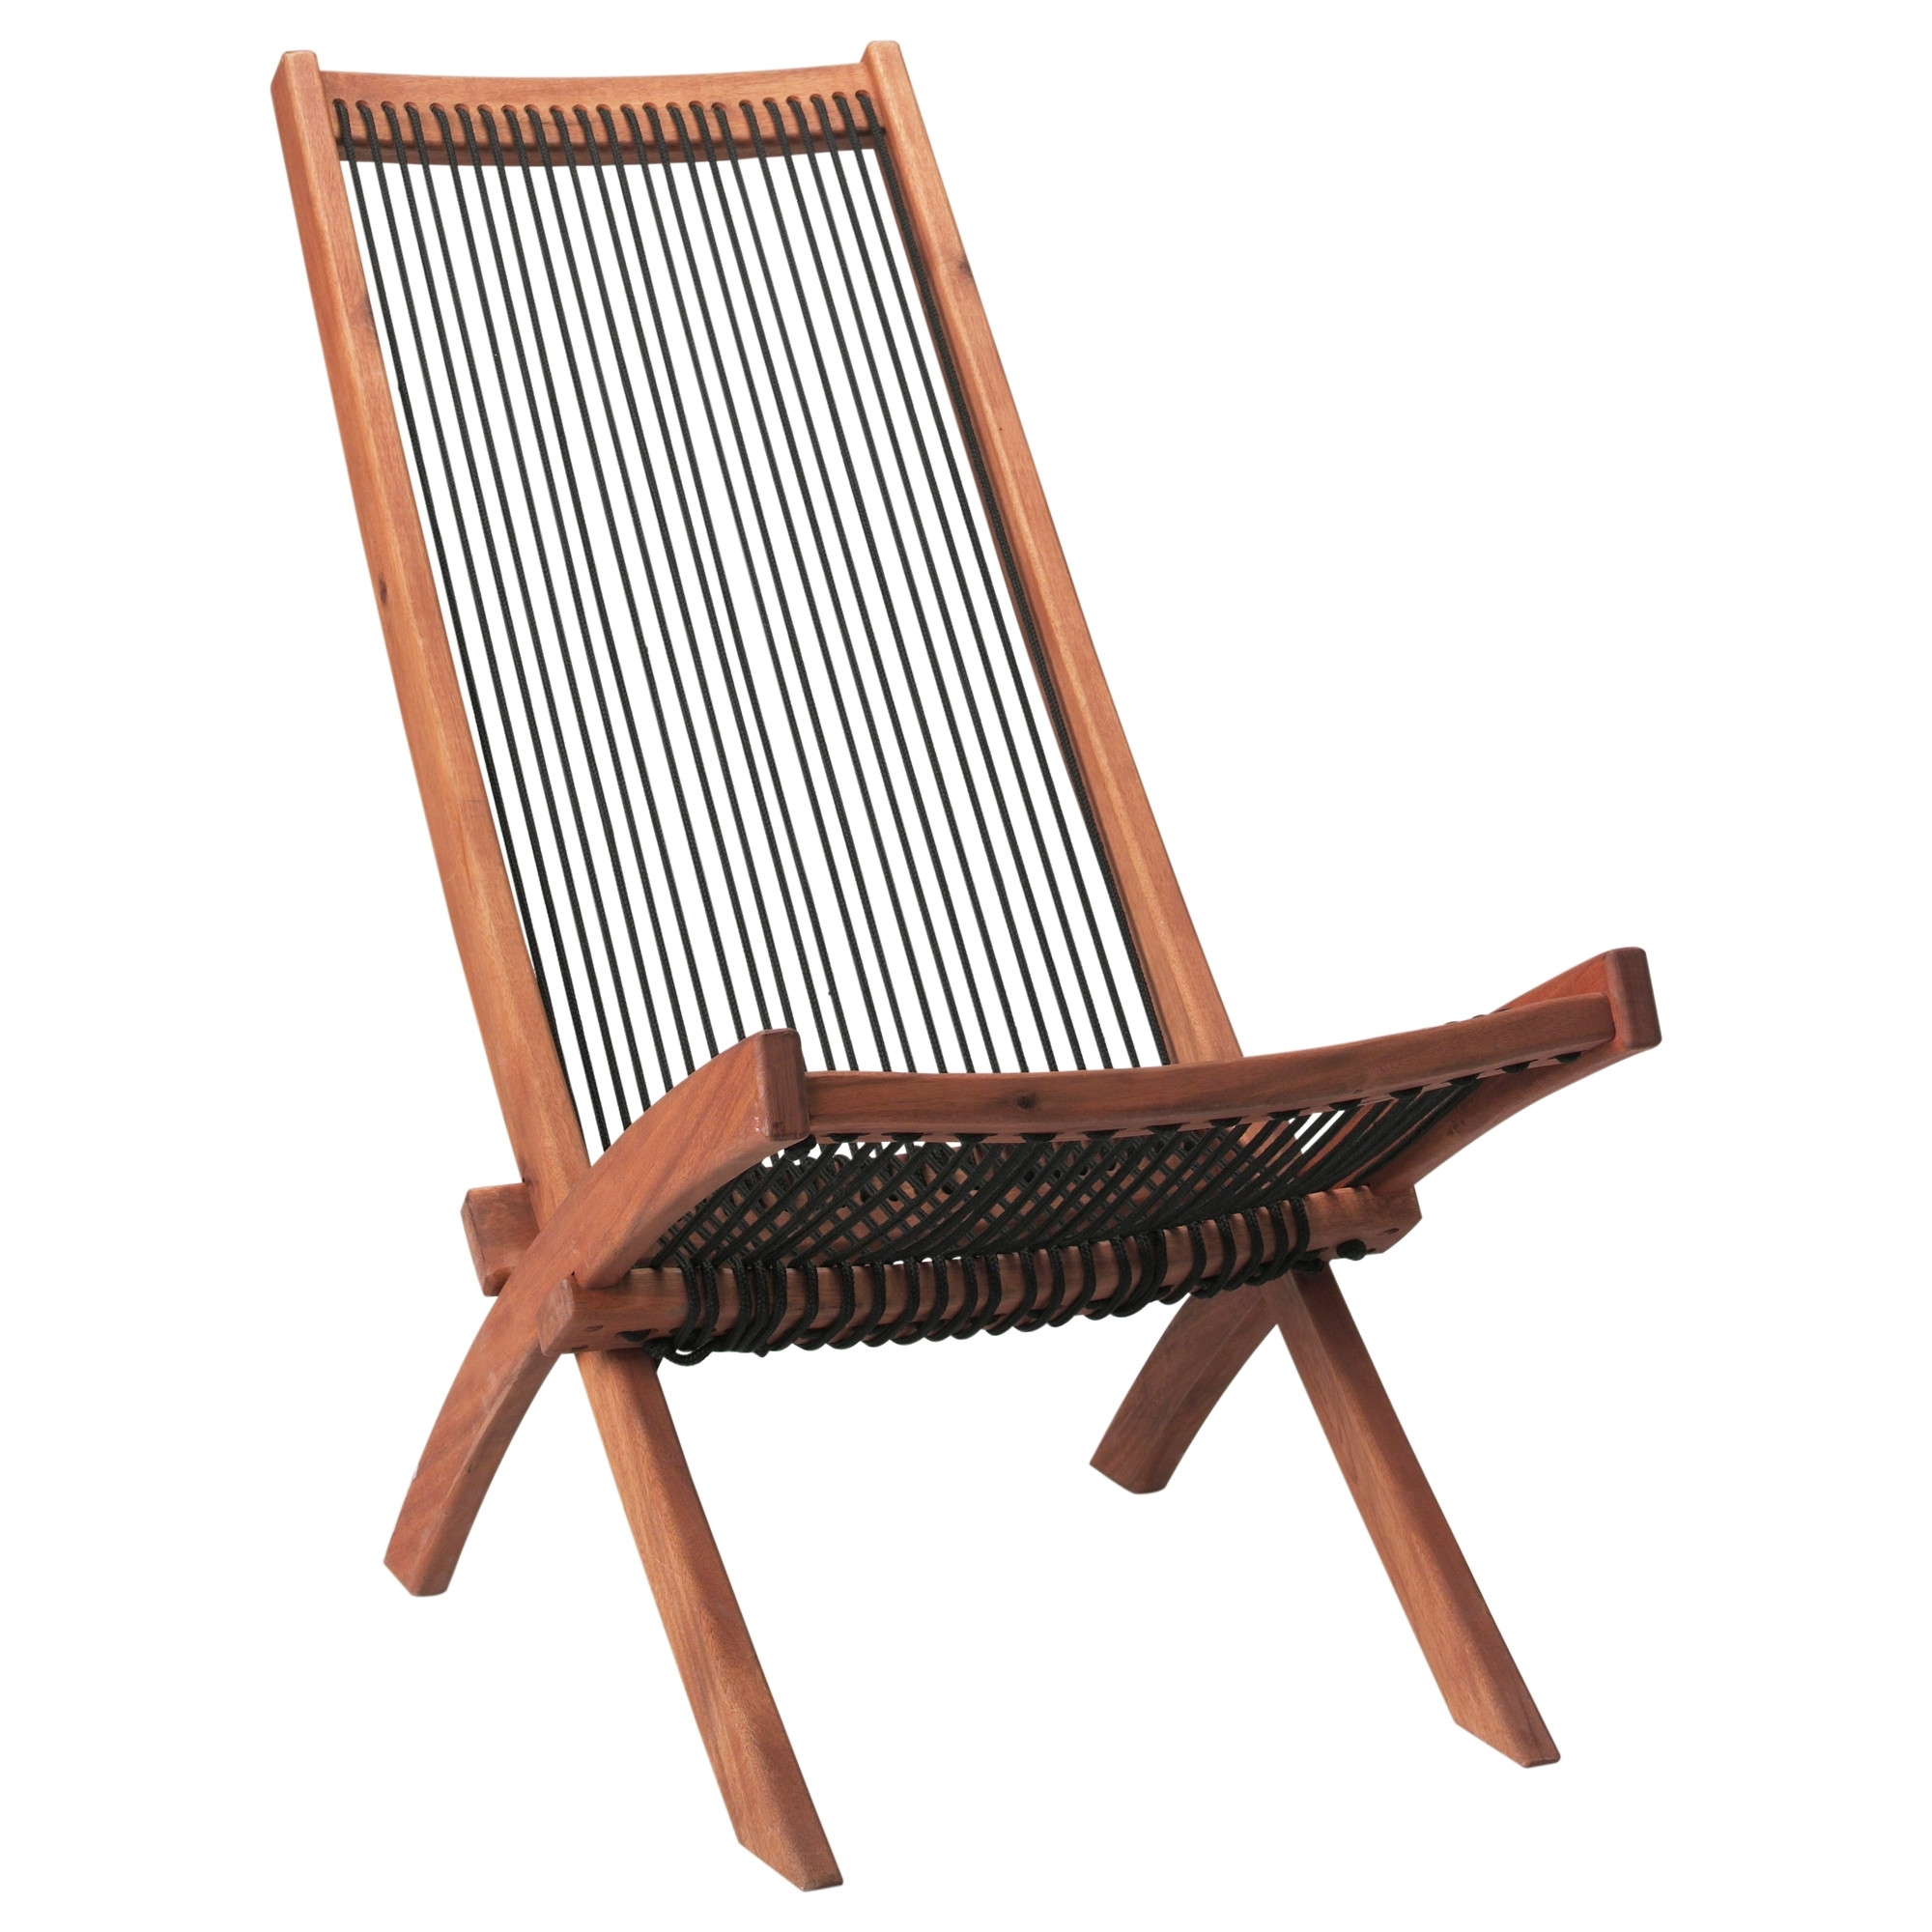 2018 Chaise Lounge Chairs For Backyard With Regard To Brommö Chaise, Outdoor – Ikea (View 13 of 15)